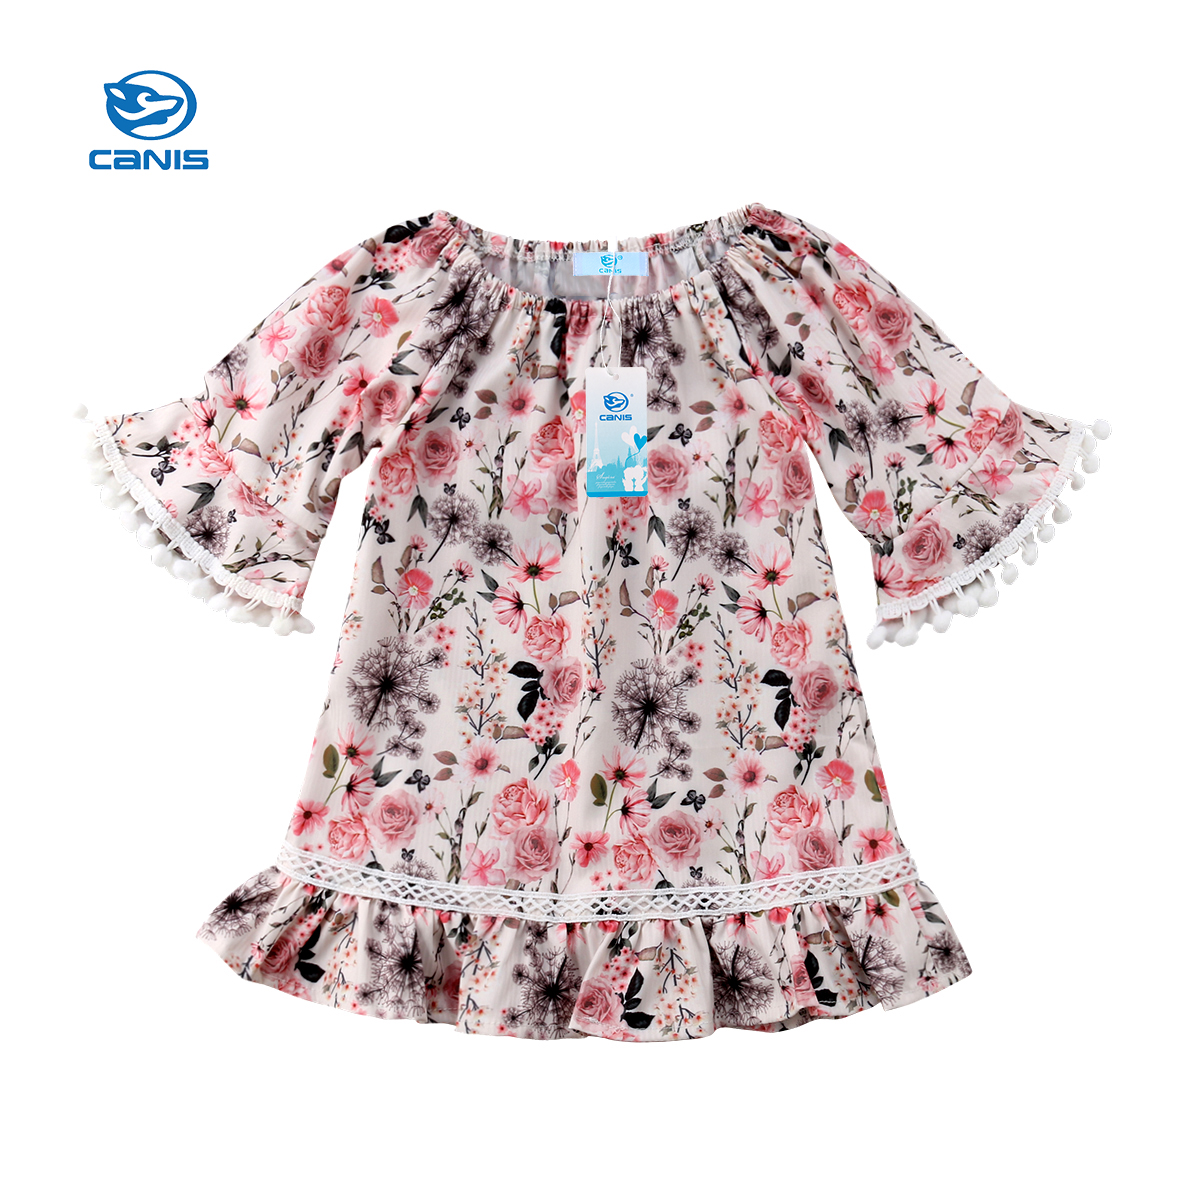 Summer Lovely Cute Kid Baby Girls Floral Tassels Short Sleeve Party Pageant Beige Dress Sundress Clothes